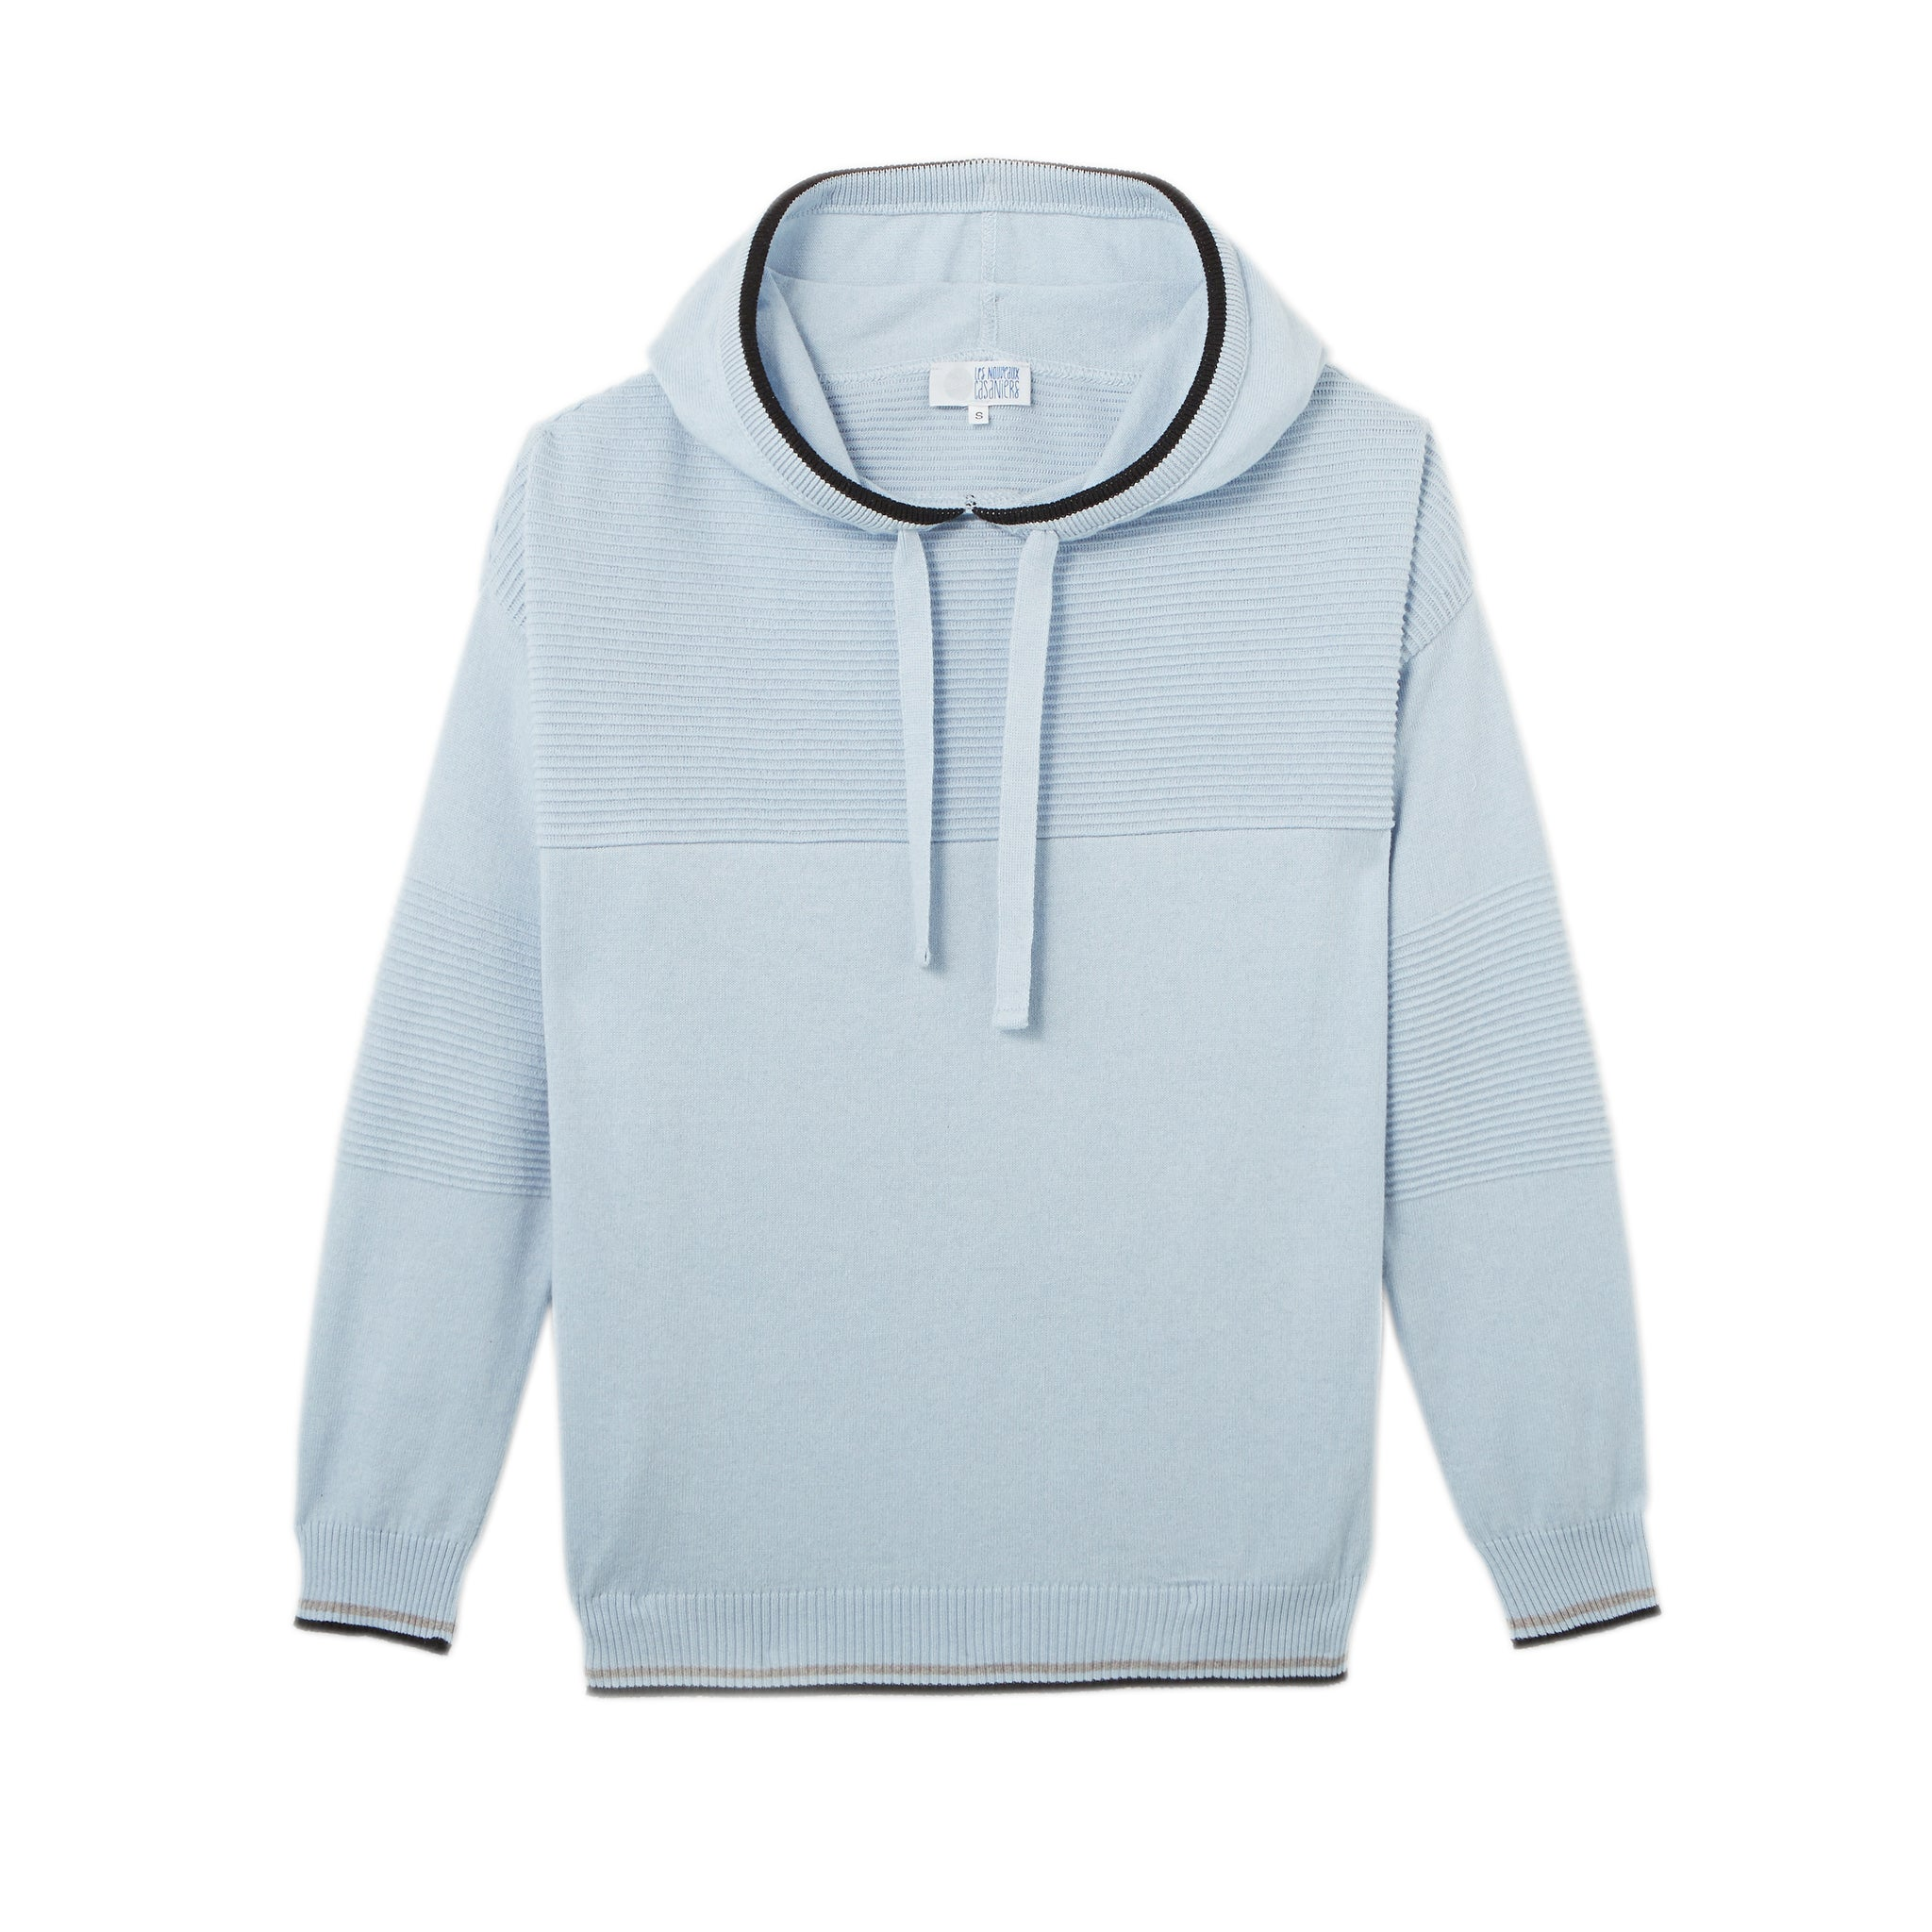 Charlie le hoodie pour femme made in France en coton cachemire